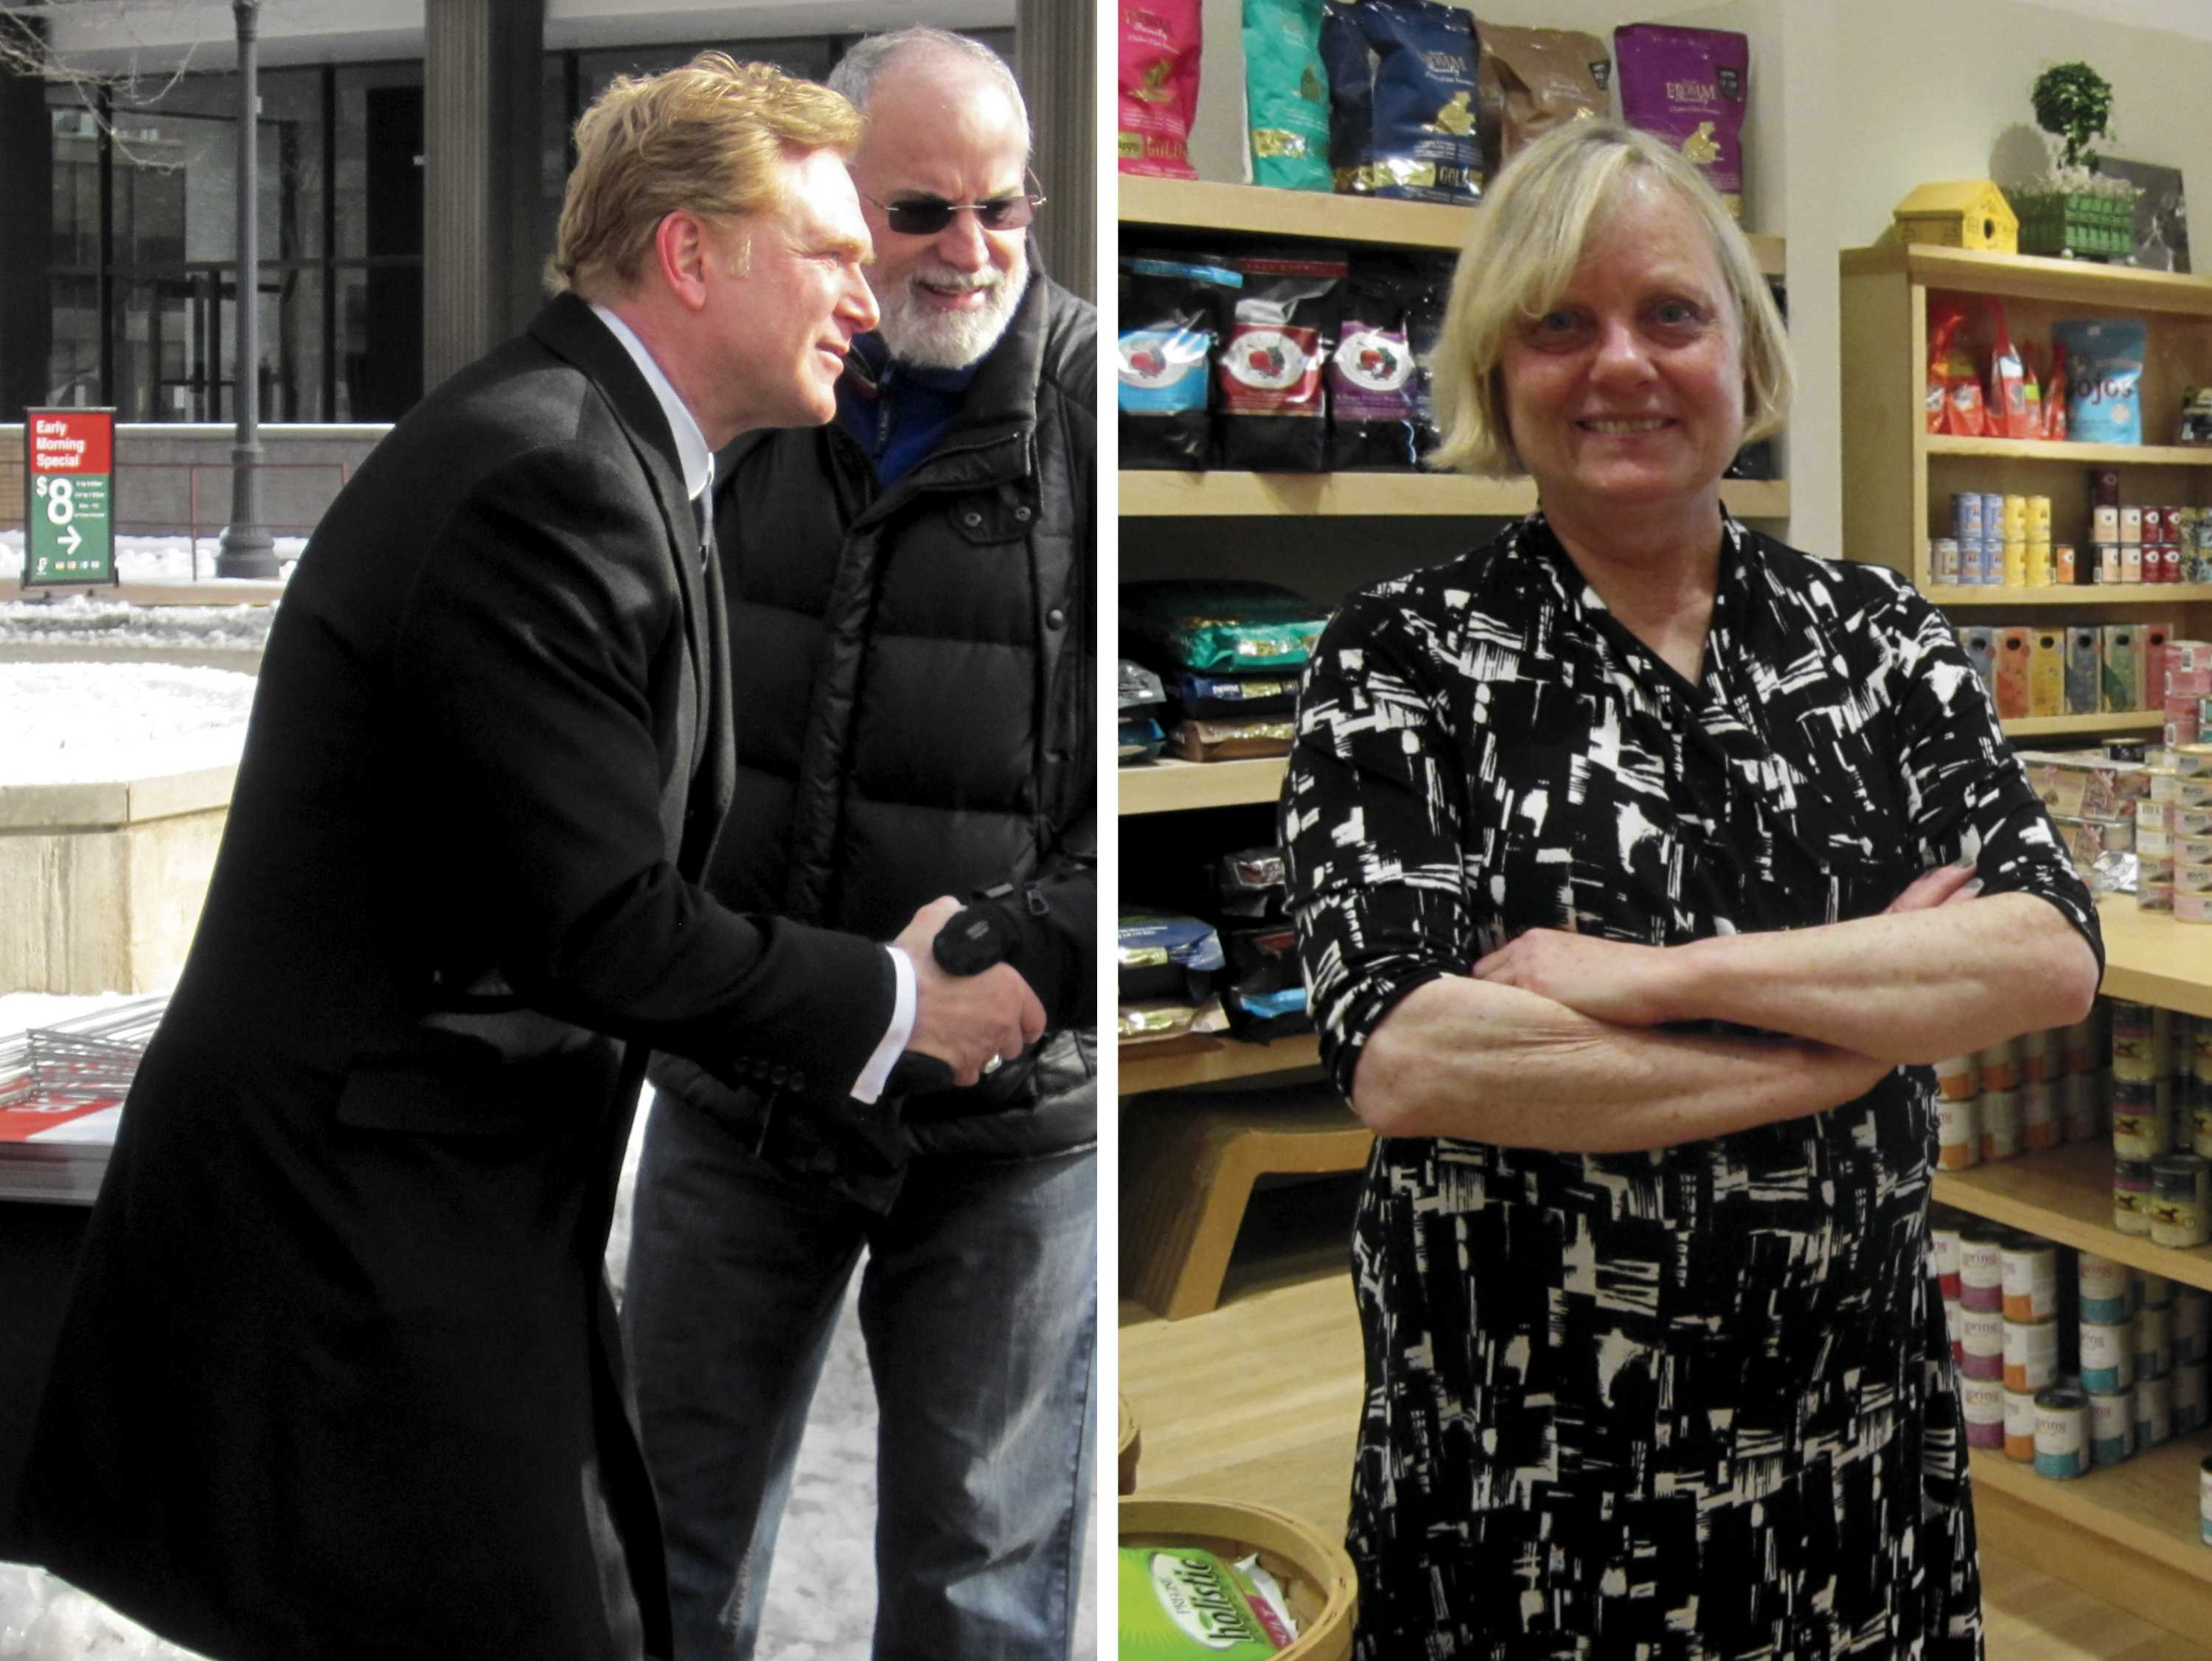 School superintendent Edward Tivador (left) and Ald. Judy Fiske (1st) will face off tonight in two on-campus forums focusing on their upcoming election. Tivador is challenging Fiske in the race for 1st Ward alderman.